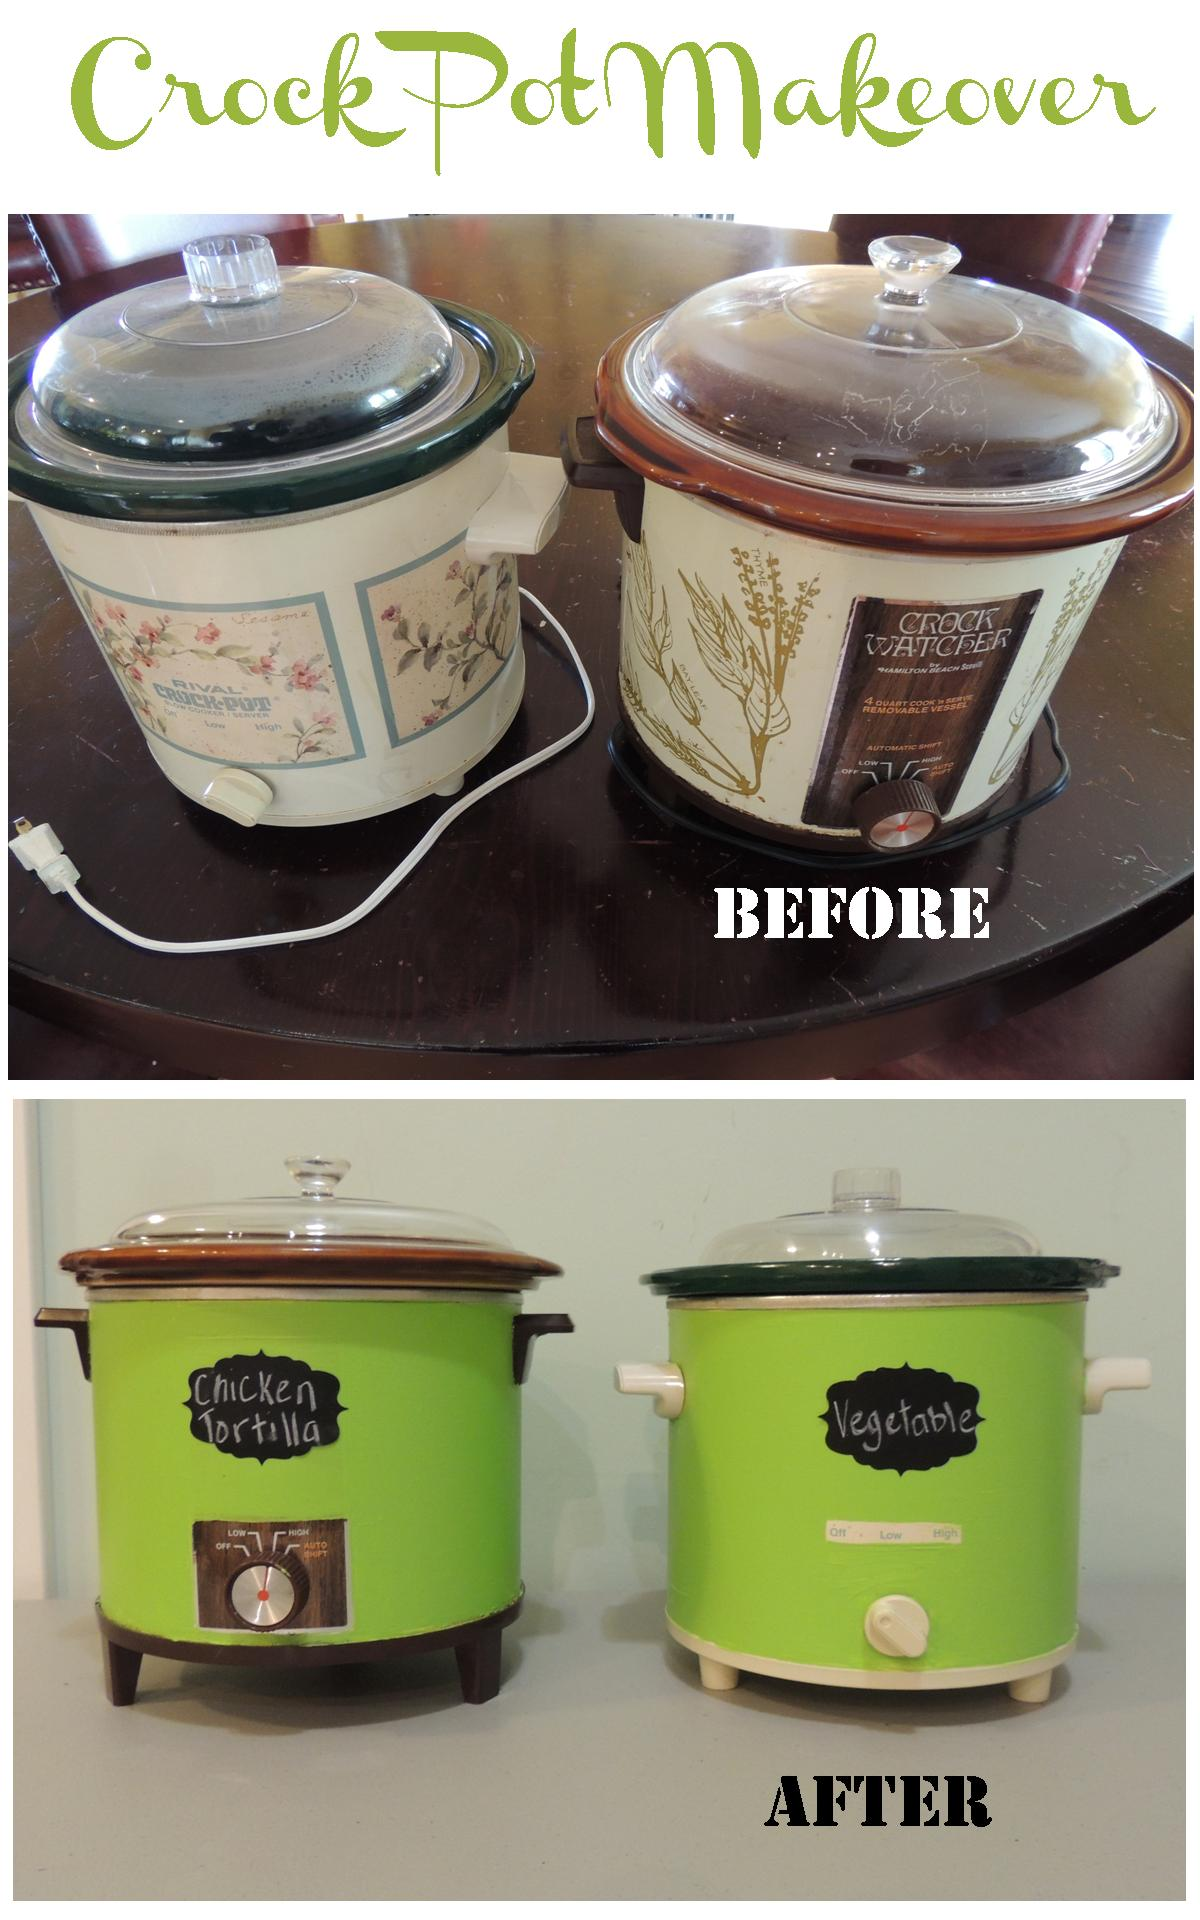 Crock pot makeover